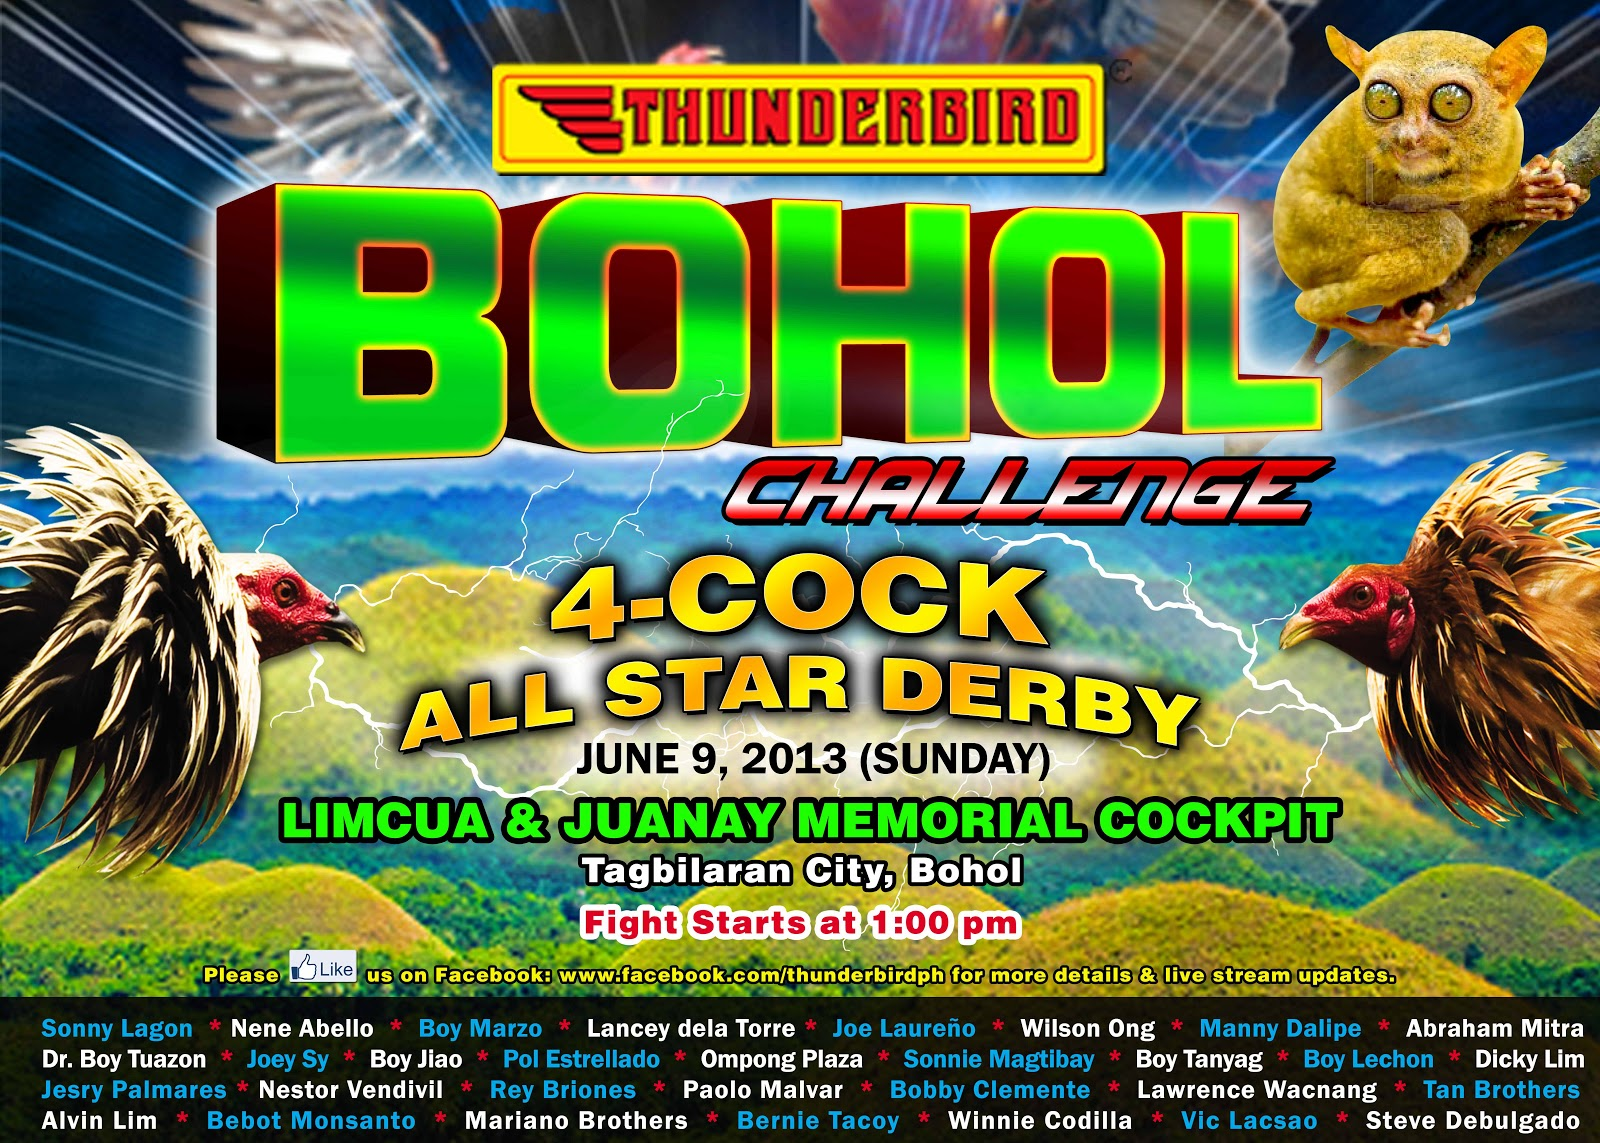 534 kb jpeg 2013 thunderbird bohol challenge 4 cock all star derby